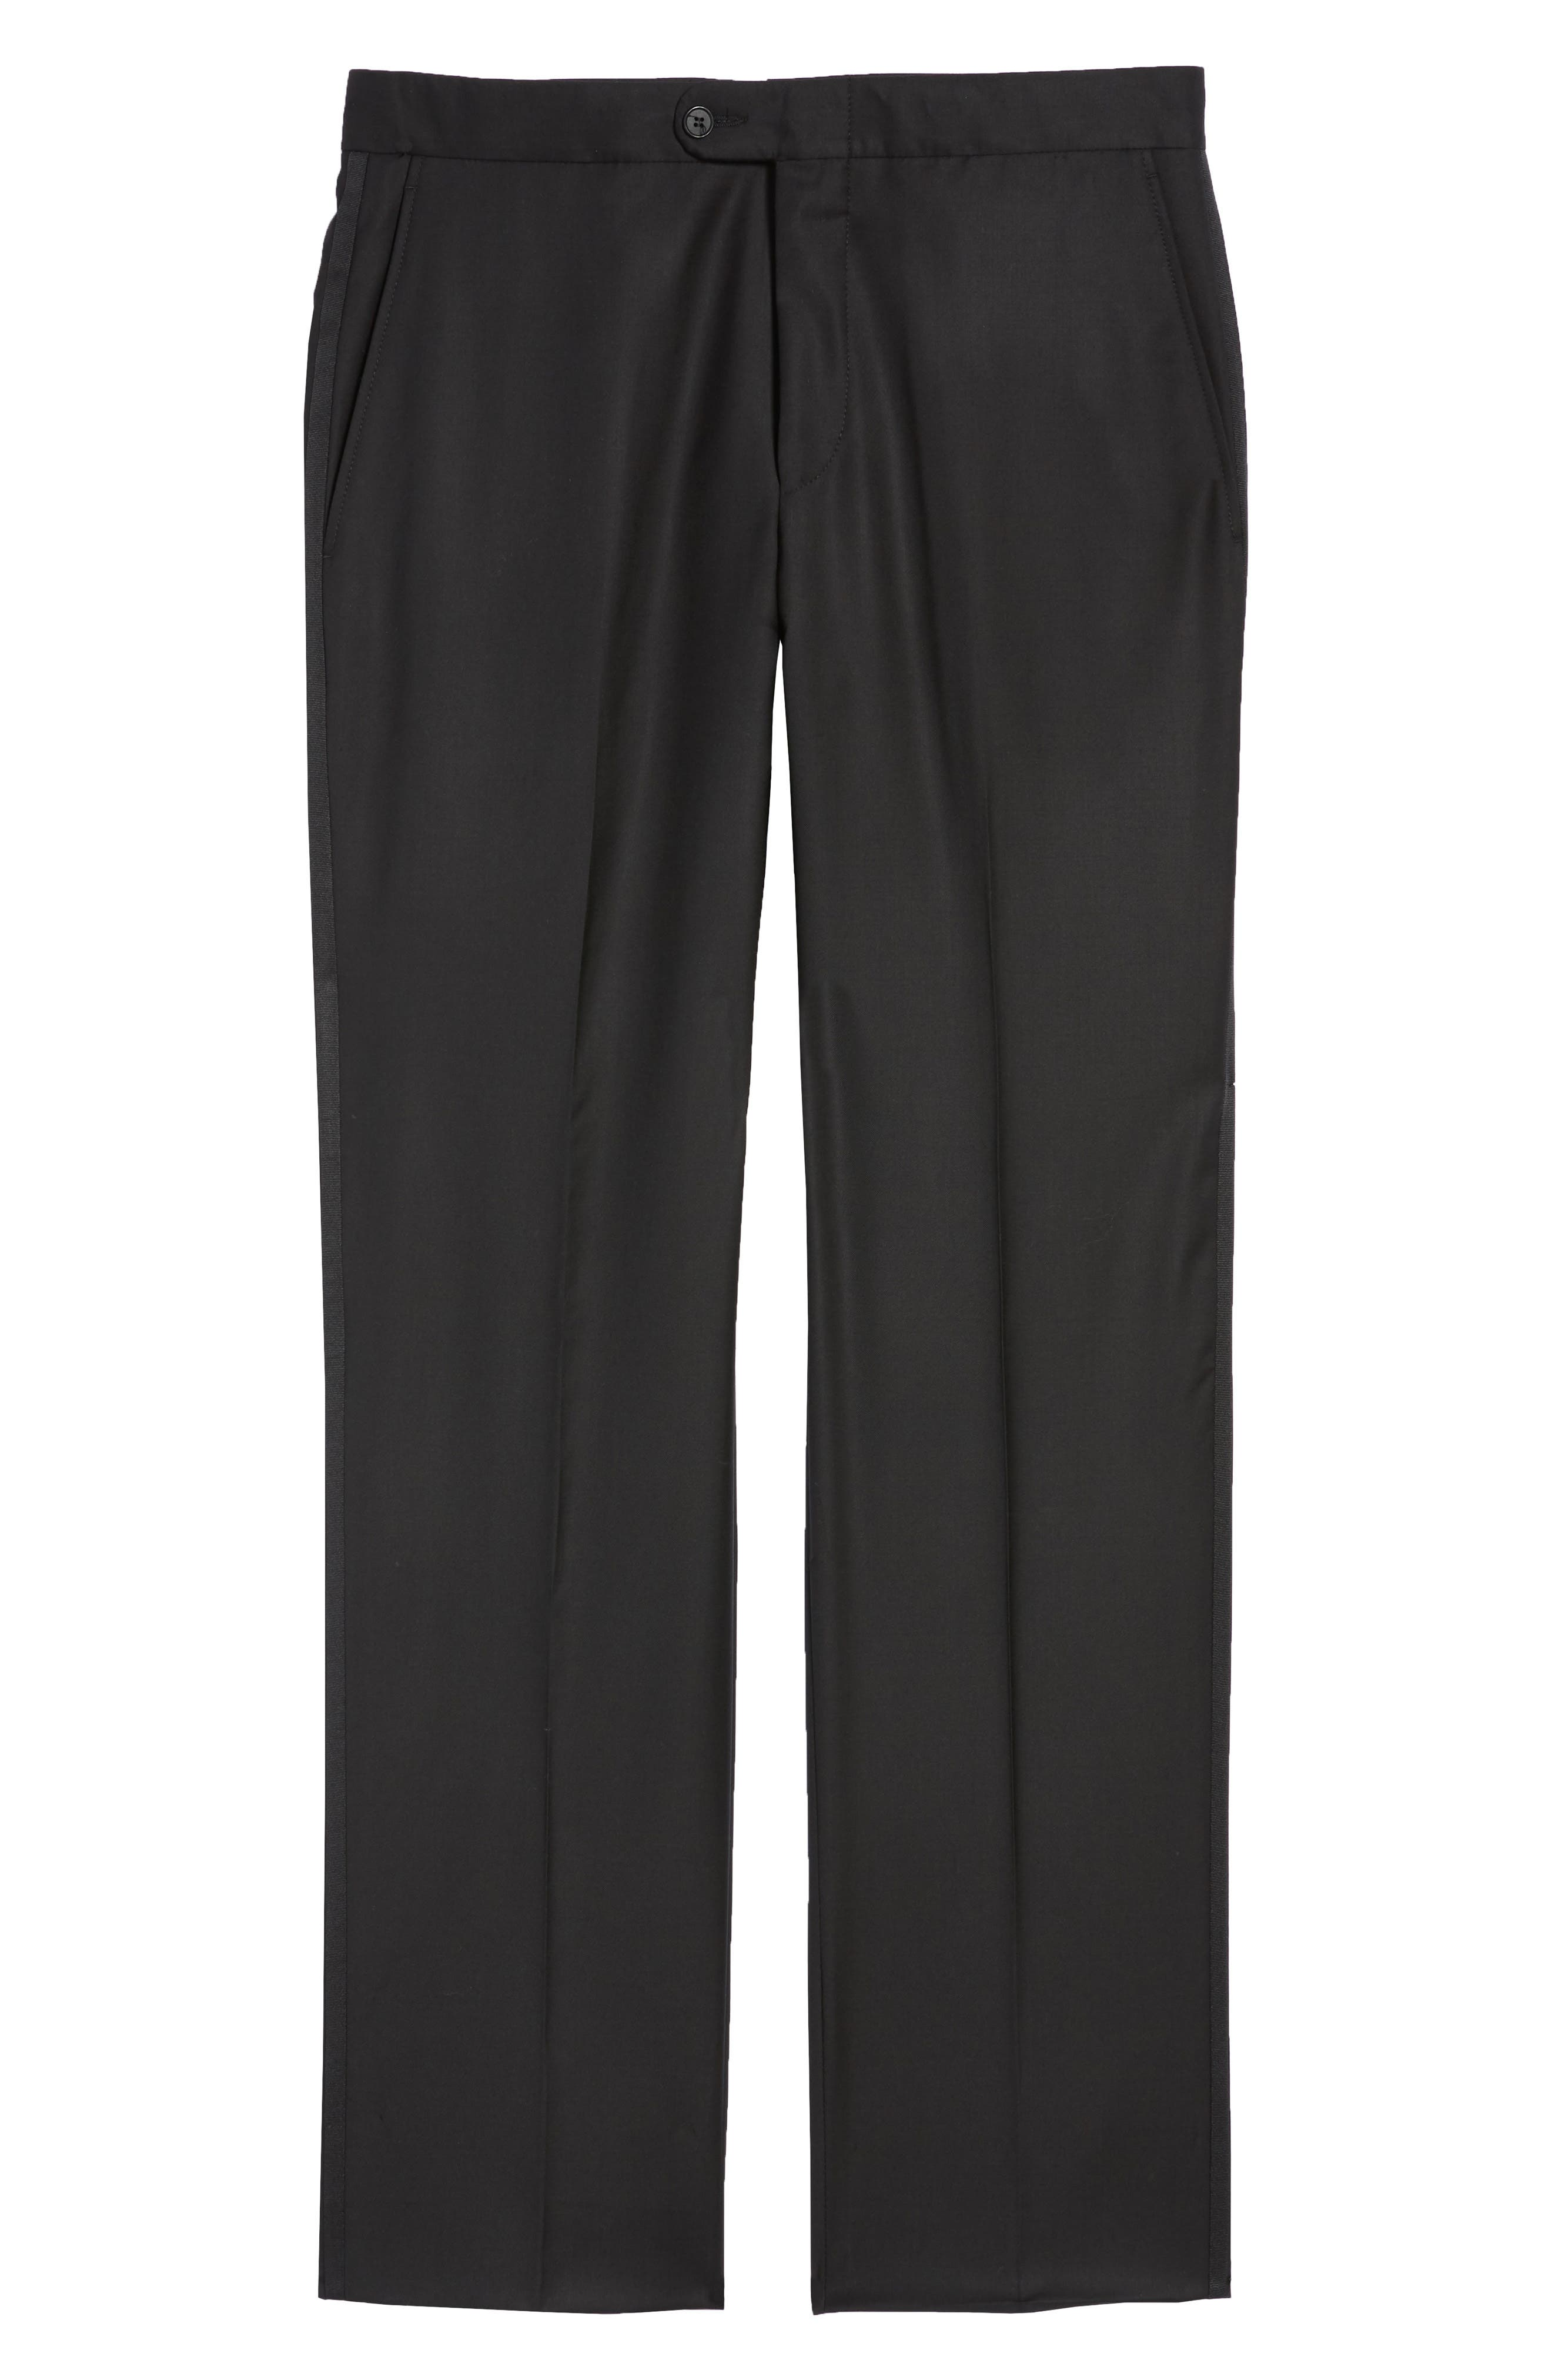 Classic B Fit Flat Front Solid Wool Trousers,                             Alternate thumbnail 6, color,                             BLACK SOLID